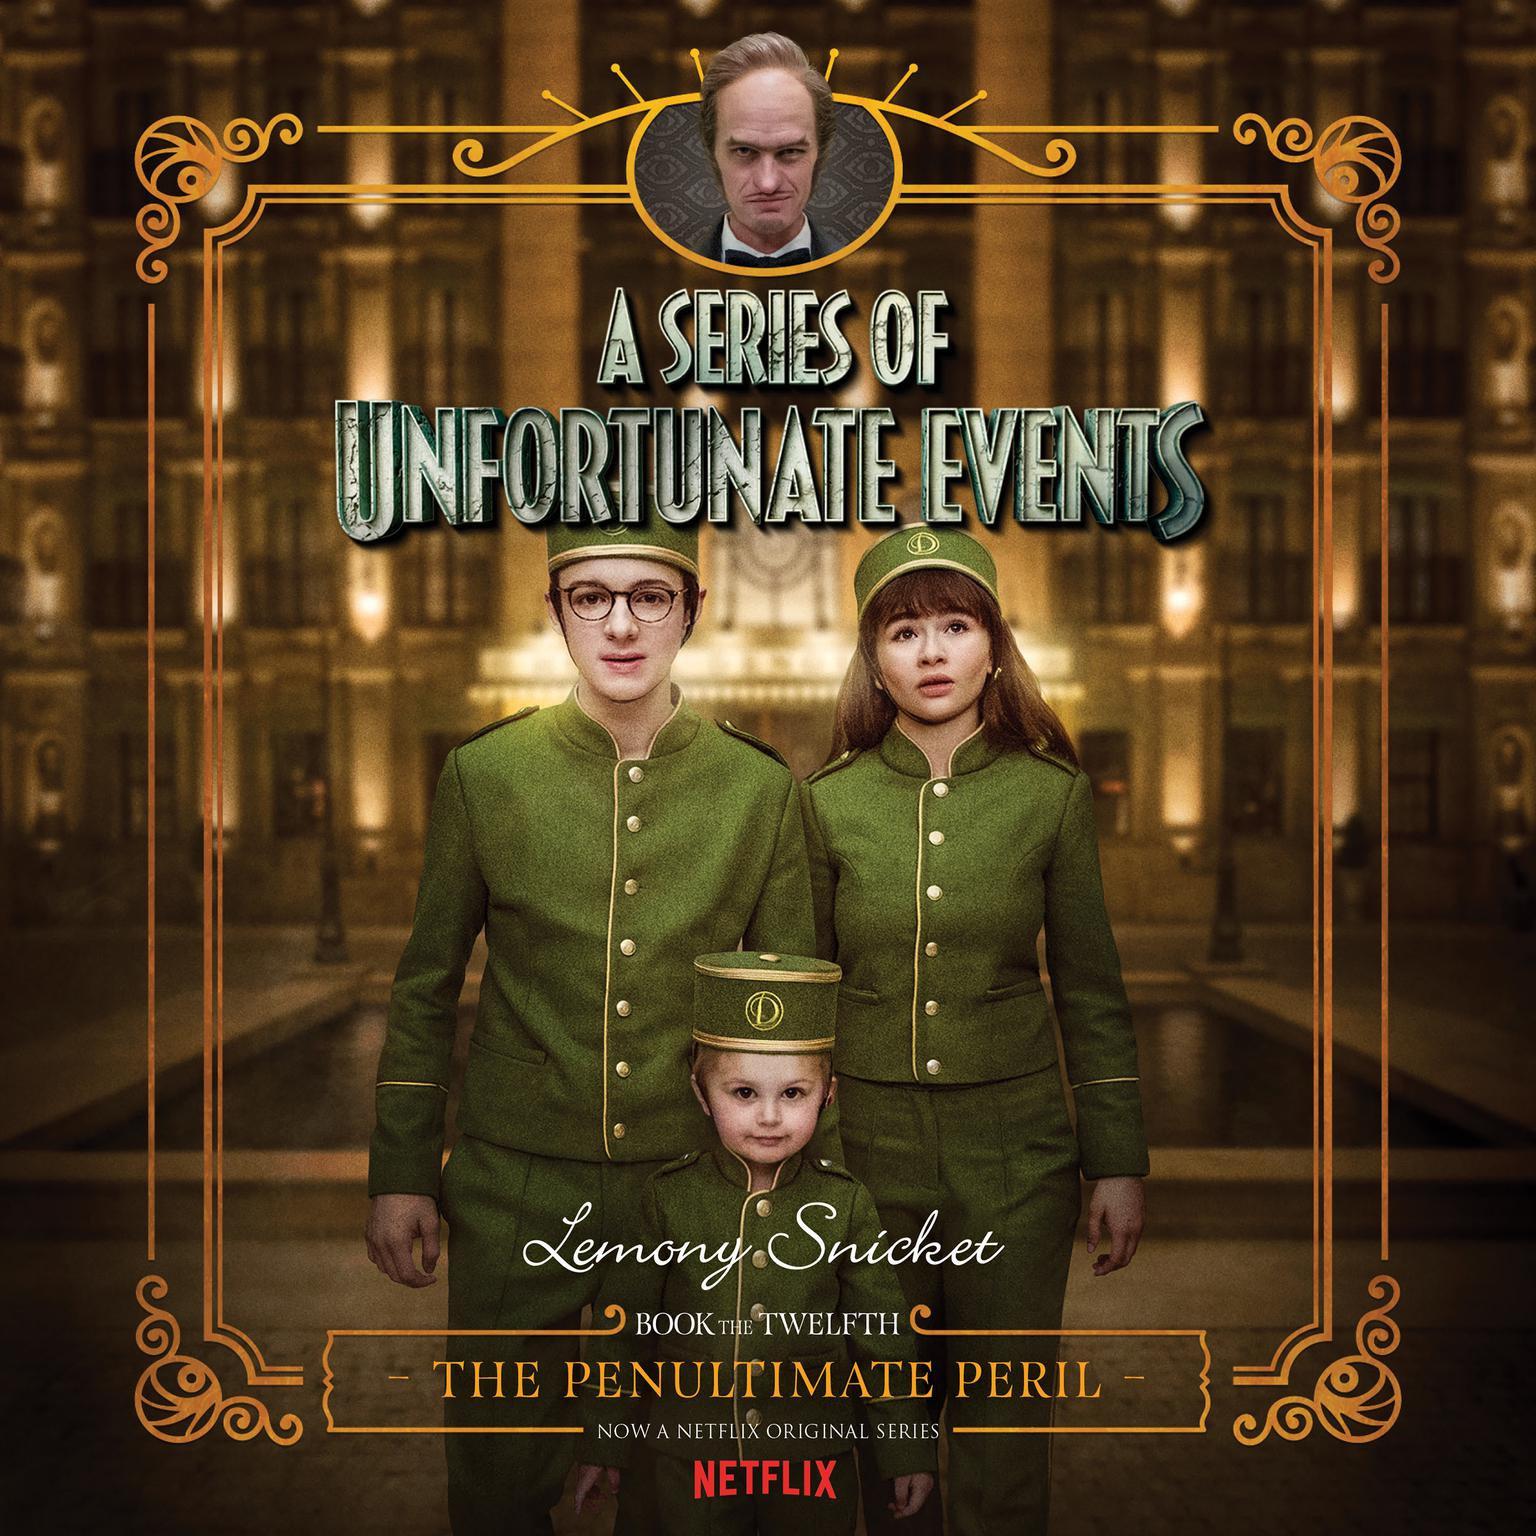 Printable Series of Unfortunate Events #12: The Penultimate Peril Audiobook Cover Art